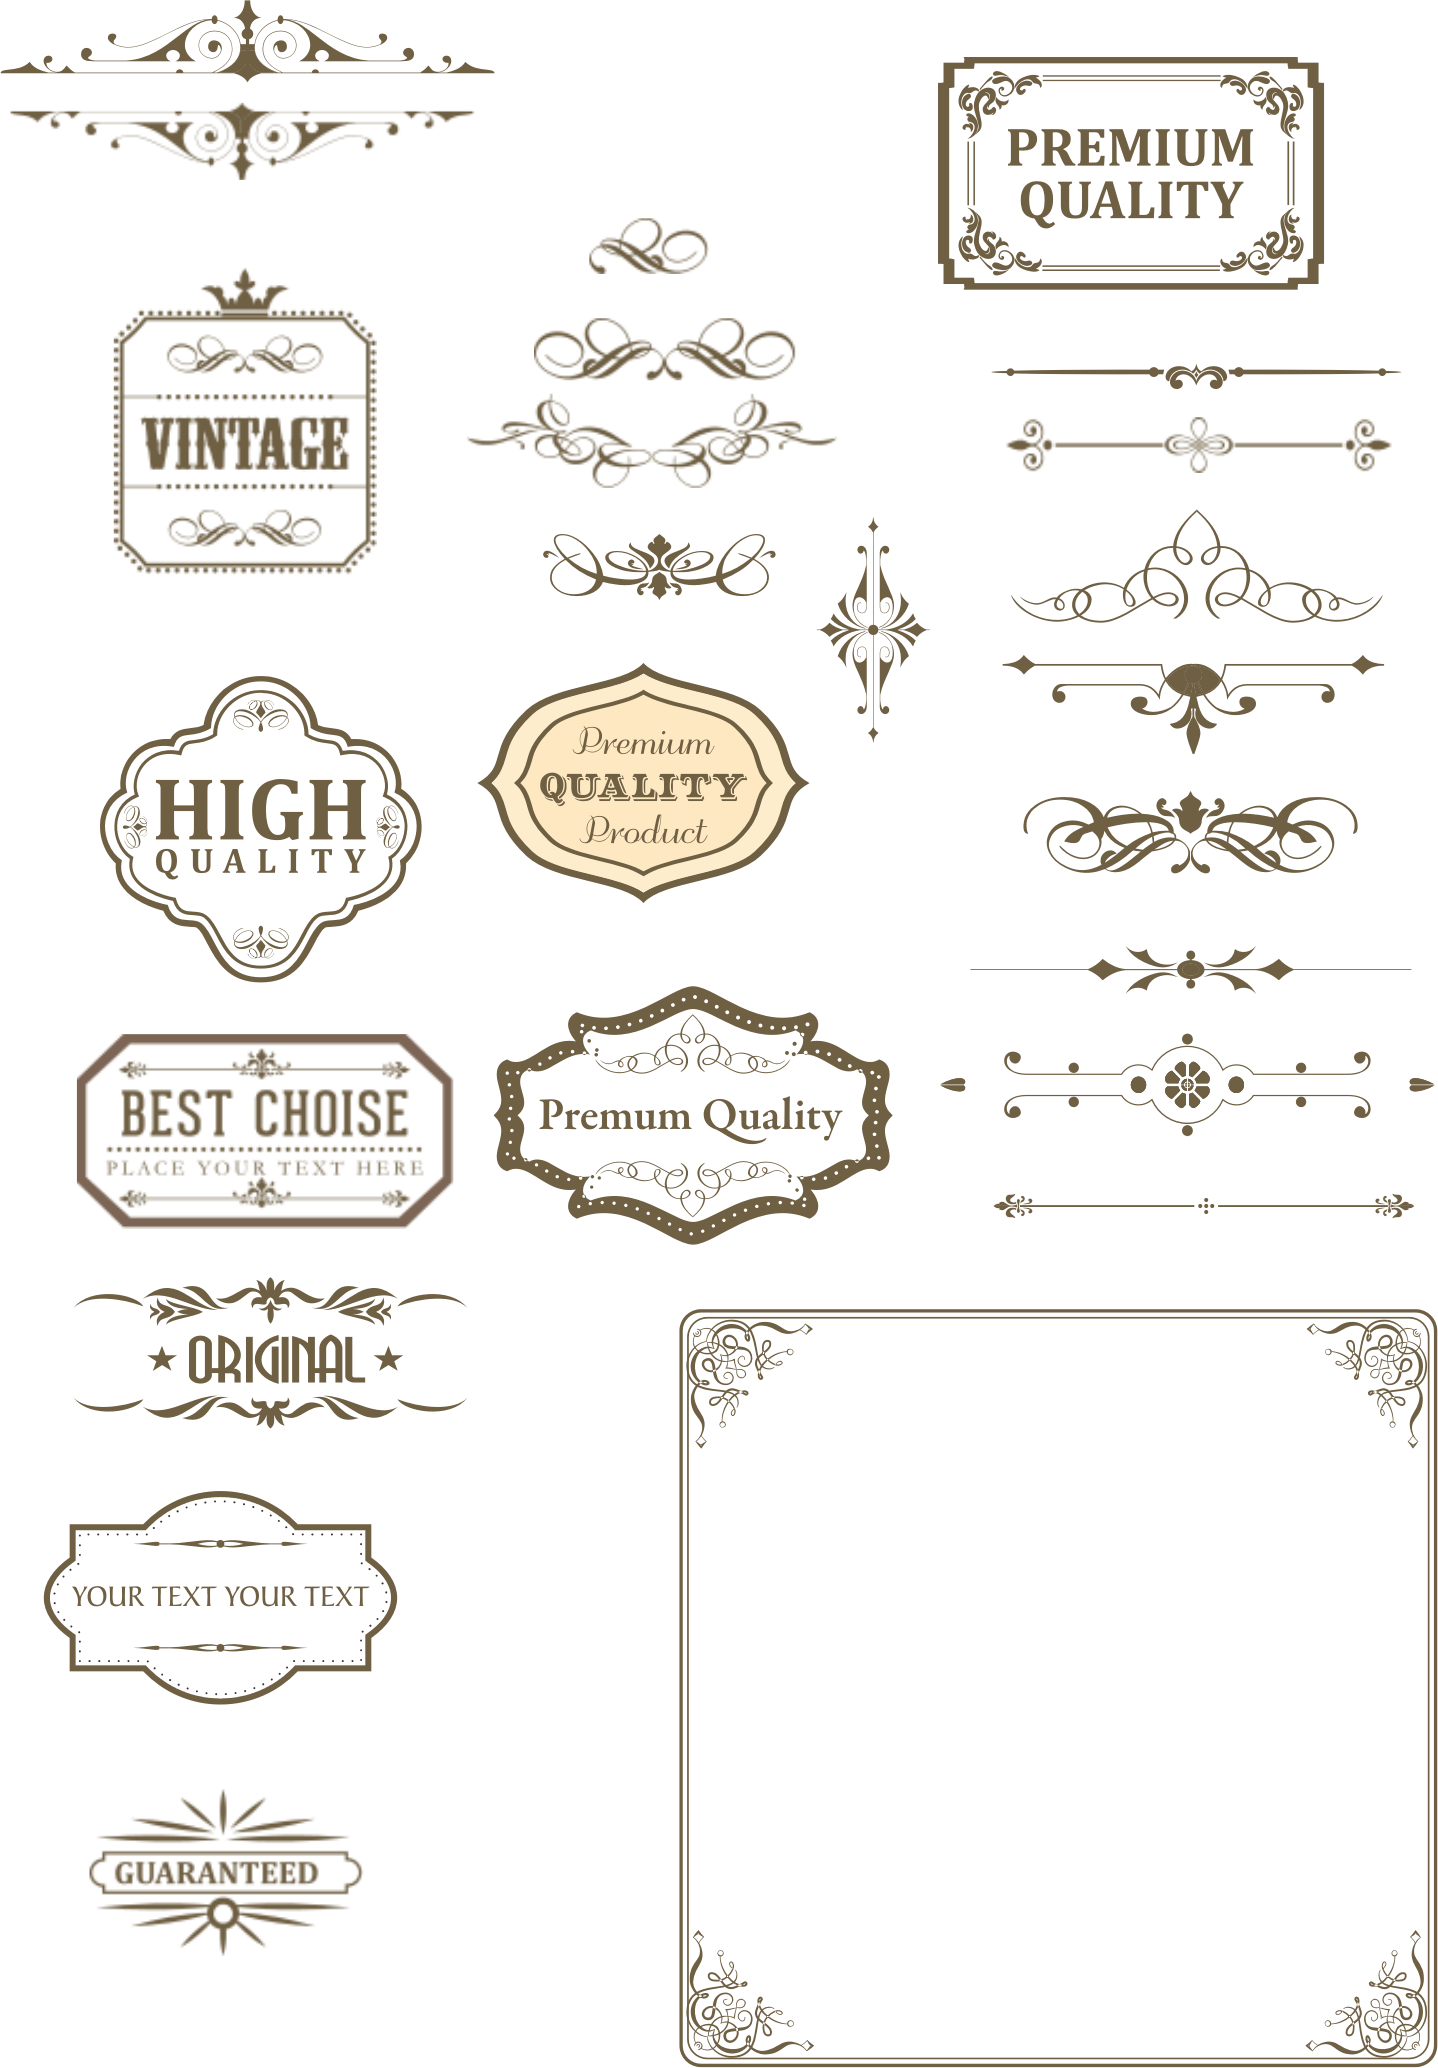 Vintage and dividers by. Square clipart square text box